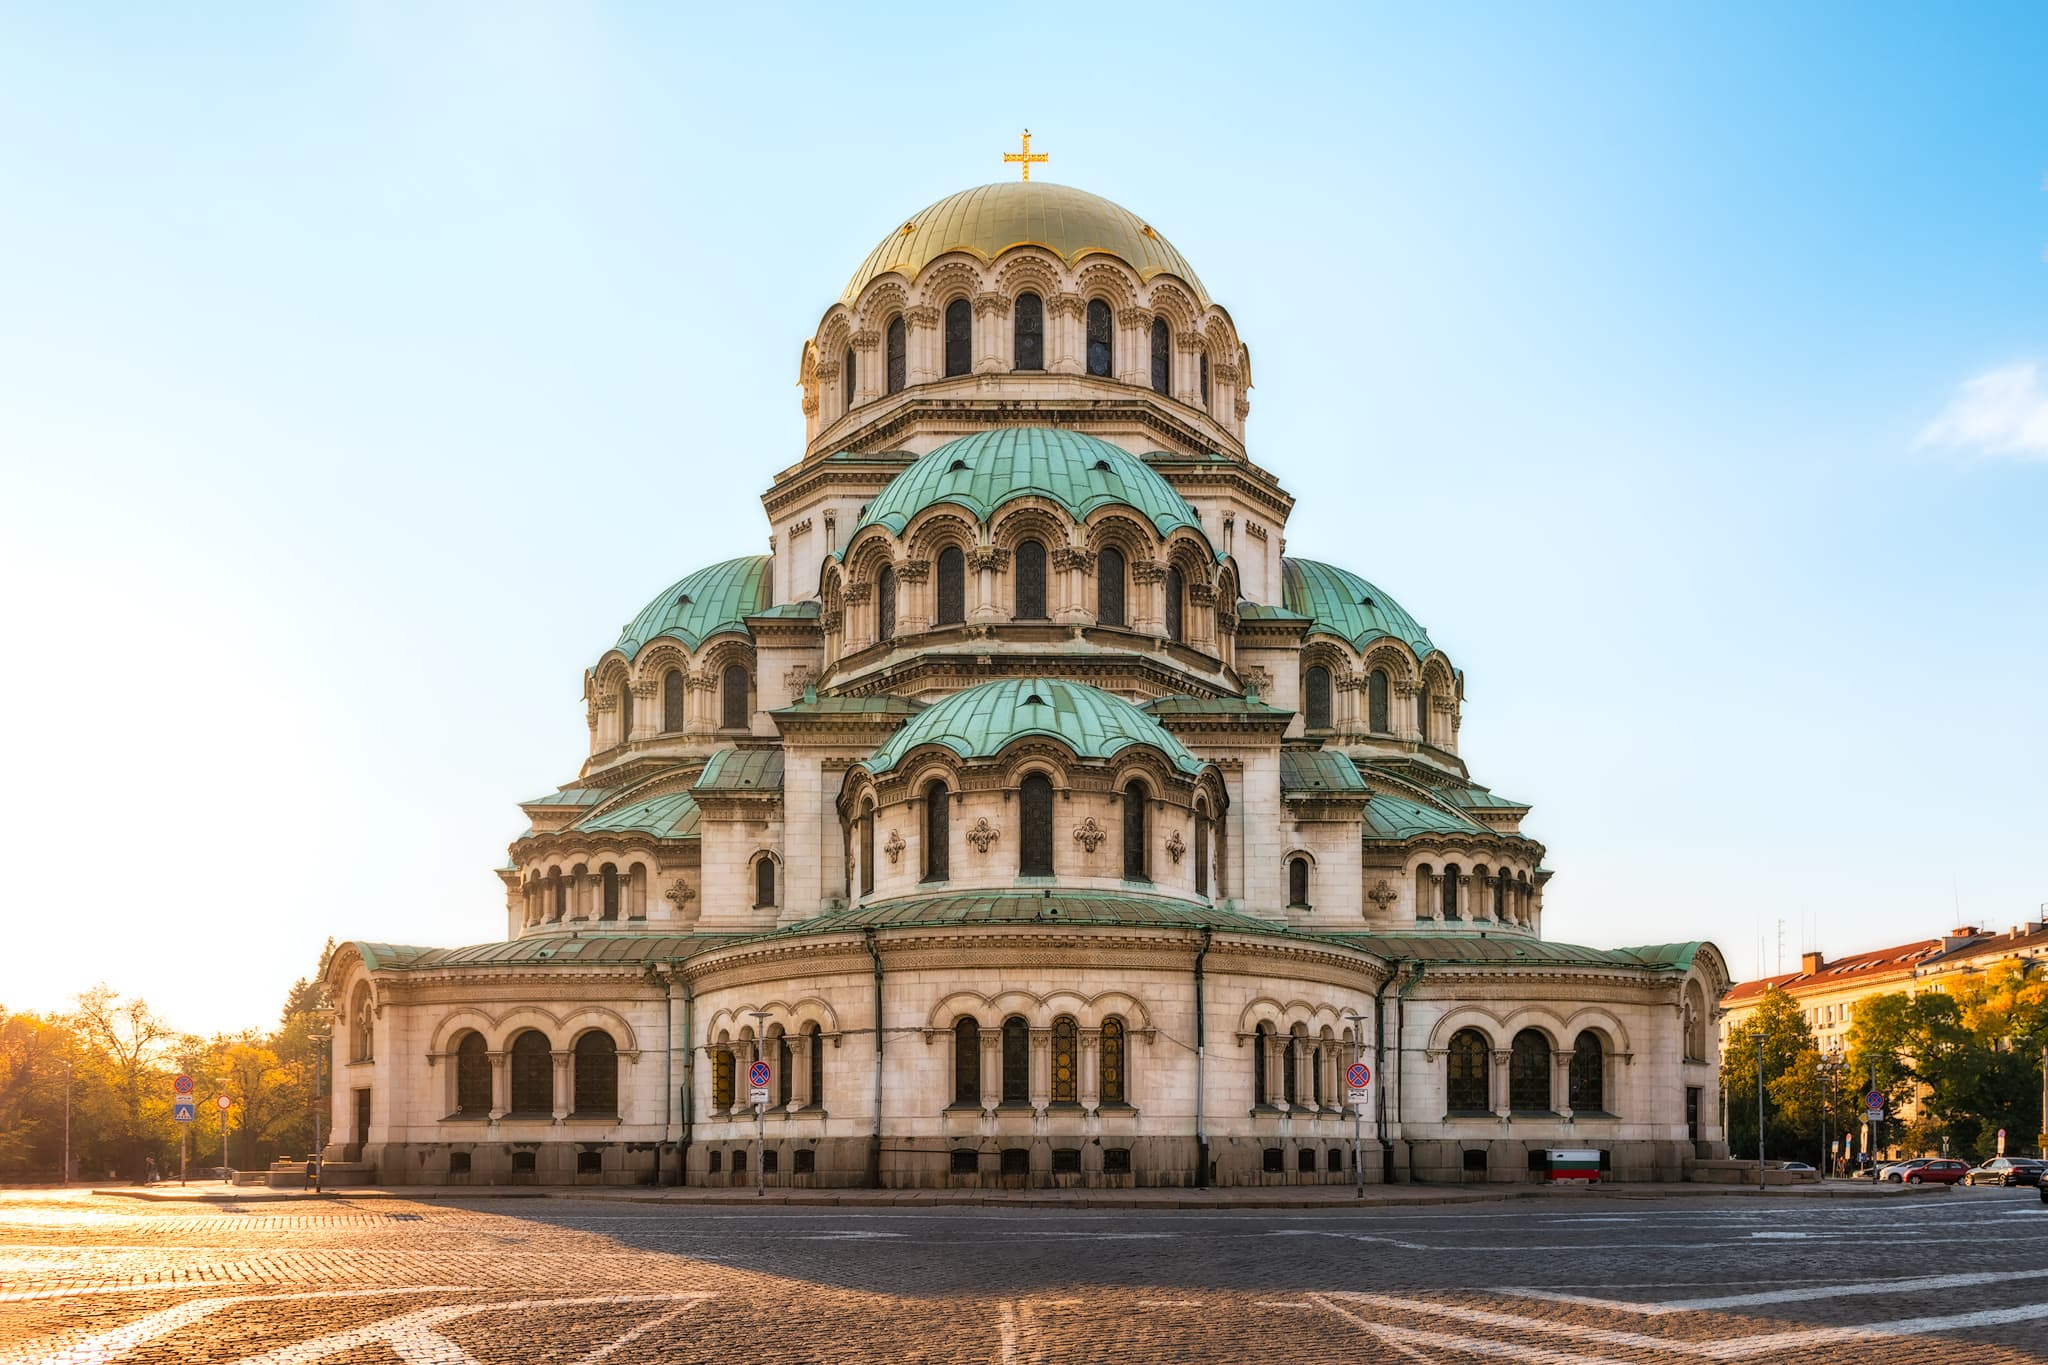 Alexander Nevsky Cathedral in Sofia, Bulgaria. An example of a Byzantine Revival style of architecture.